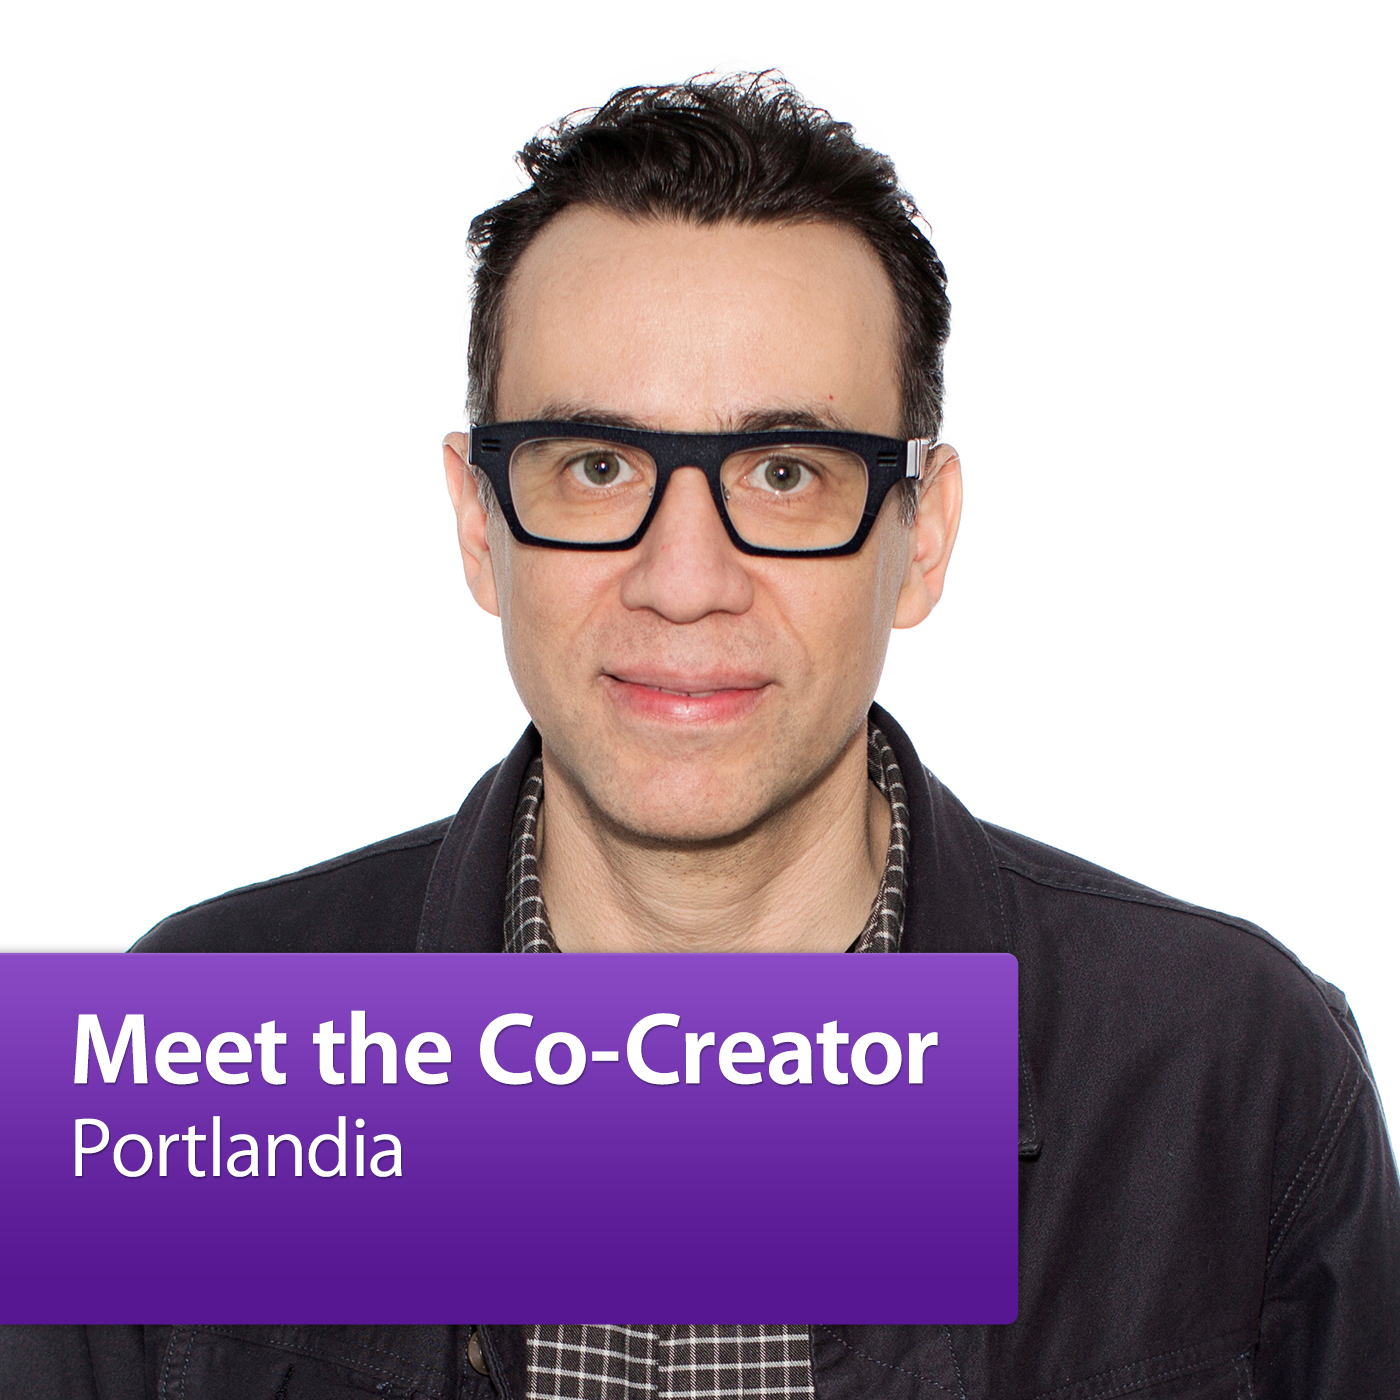 Portlandia: Meet the Co-Creator